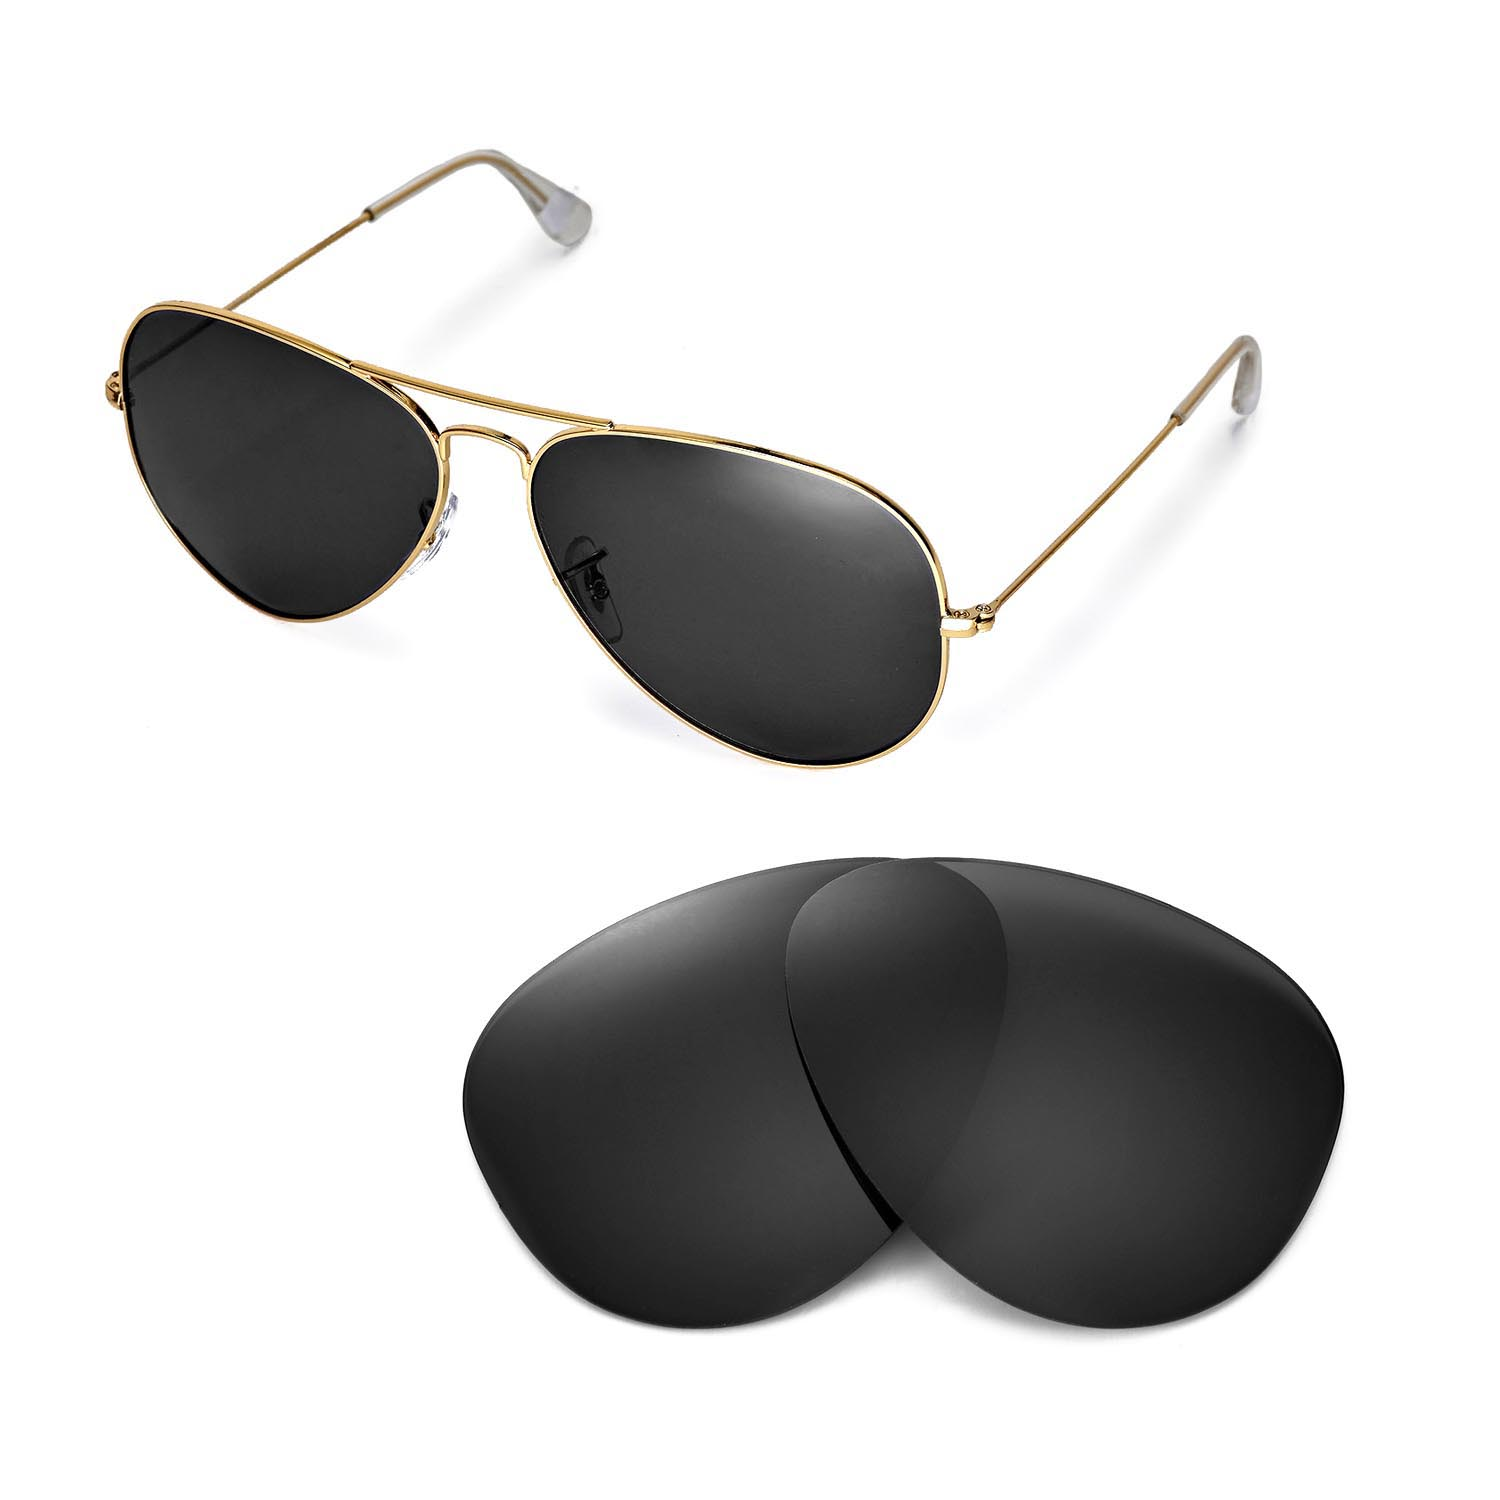 431aa7313ce Details about New Walleva Polarized Black Lenses For Ray-Ban Aviator Large  Metal RB3025 62mm